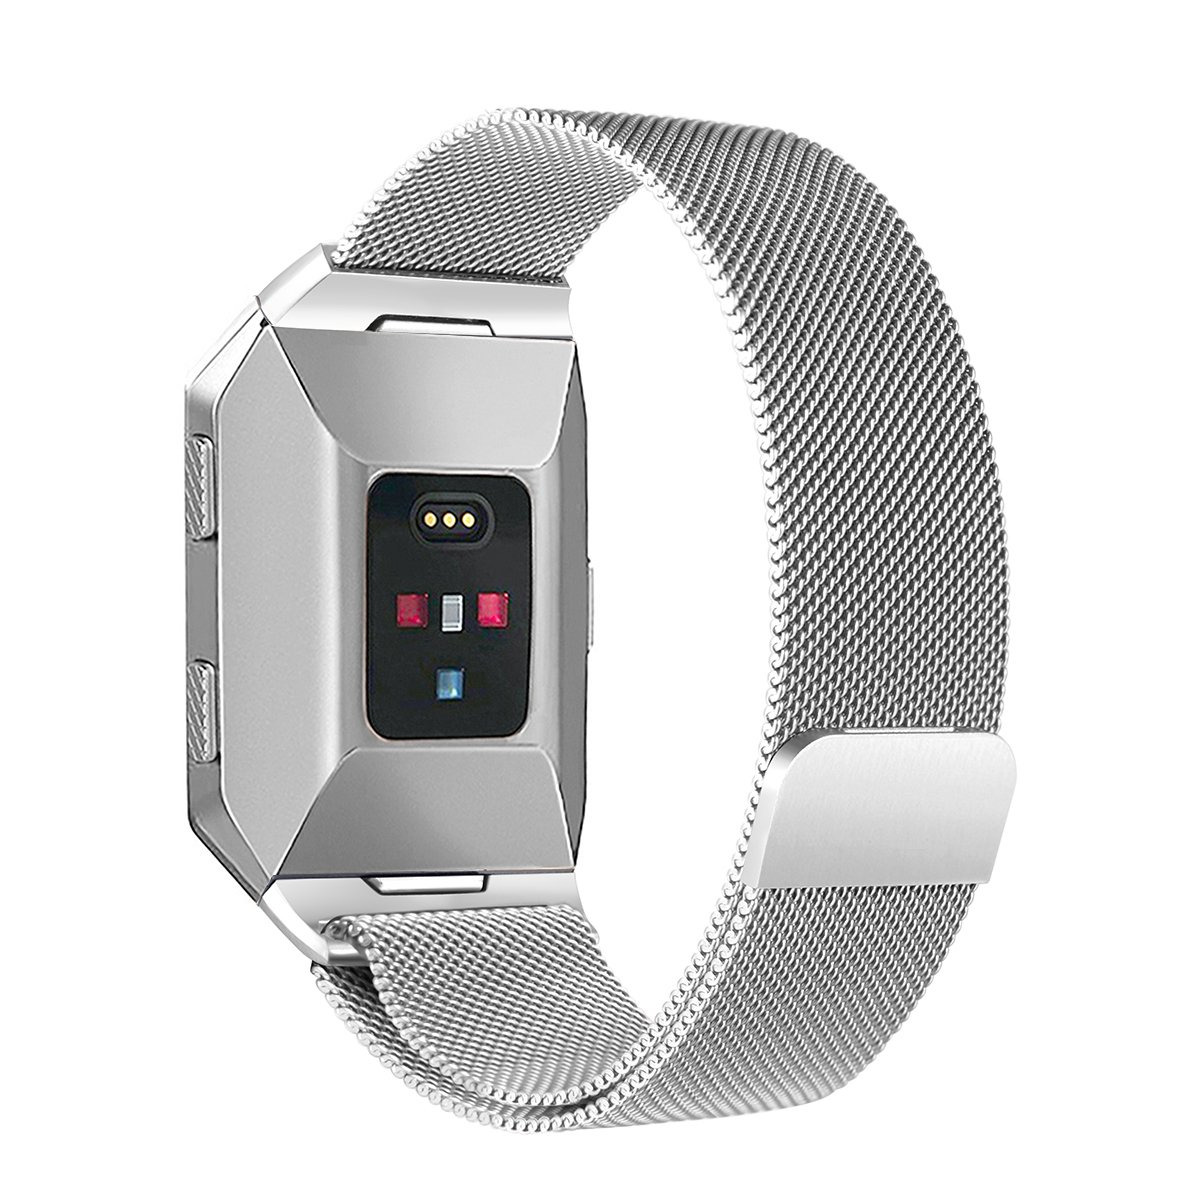 Fitbit Ionic Bands Small Large、bayiteステンレススチールMilanese Loopメタル交換用ストラップwith Uniqueマグネットロックアクセサリーfor Fitbit Ionic 6.7